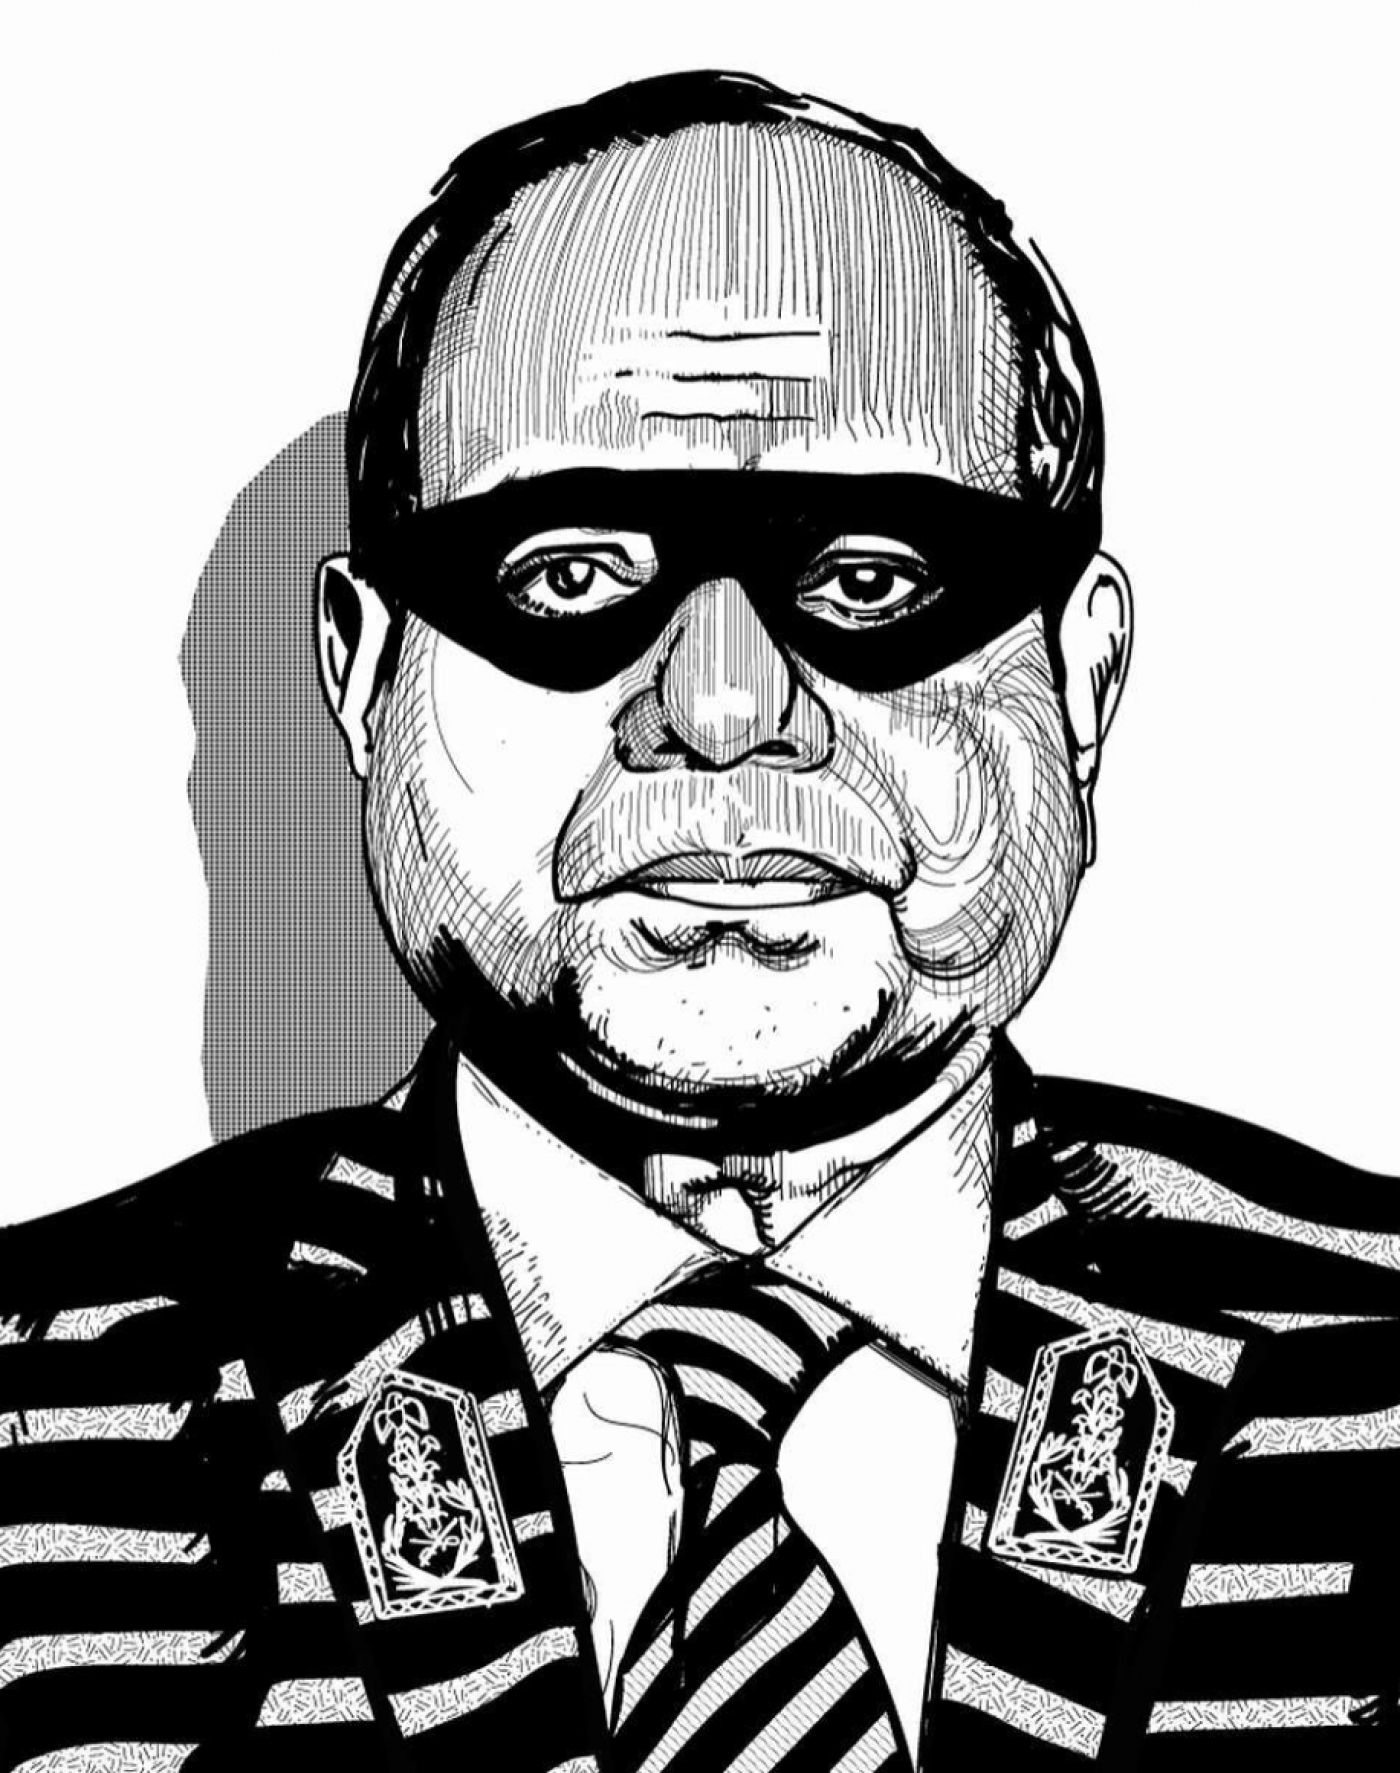 Egyptian artist Ganzeer's (@ganzeer) rendition of El-Sisi presented as a burglar, which has become a popular sign held by protestors. (Wikimedia Commons)